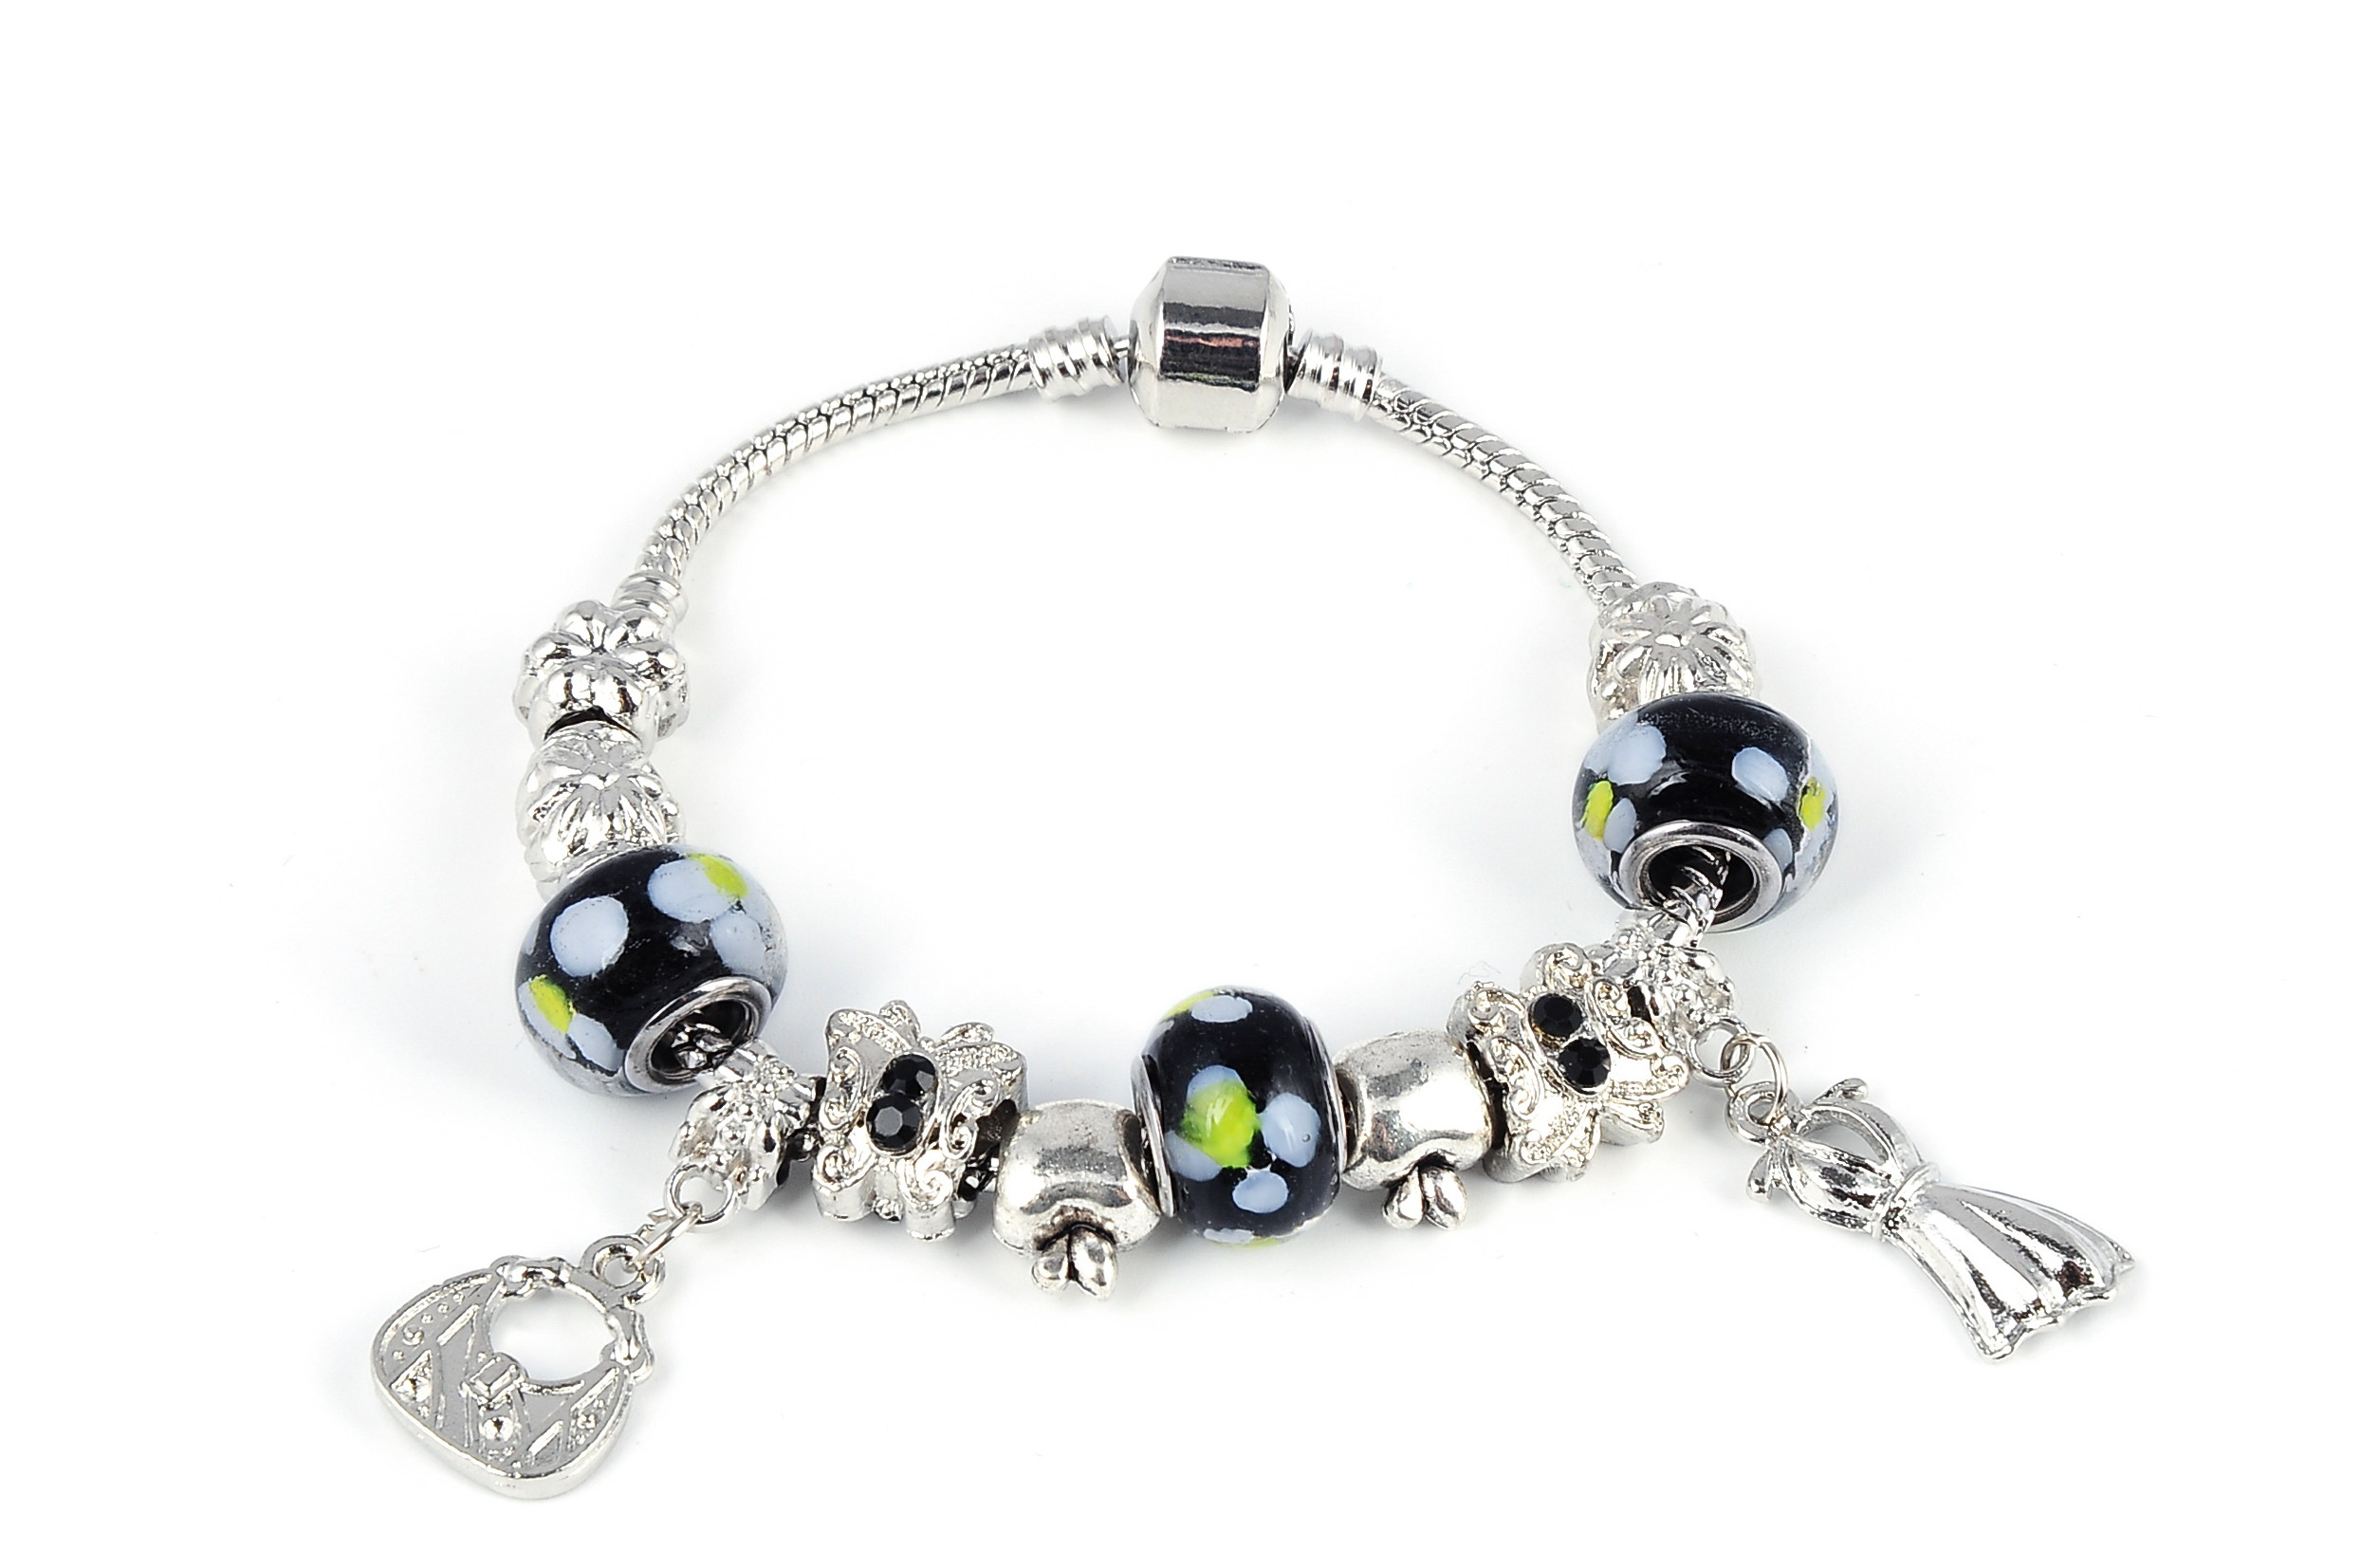 Fashionable Crystal Bead Charm Bracelet - various colors - f-br6